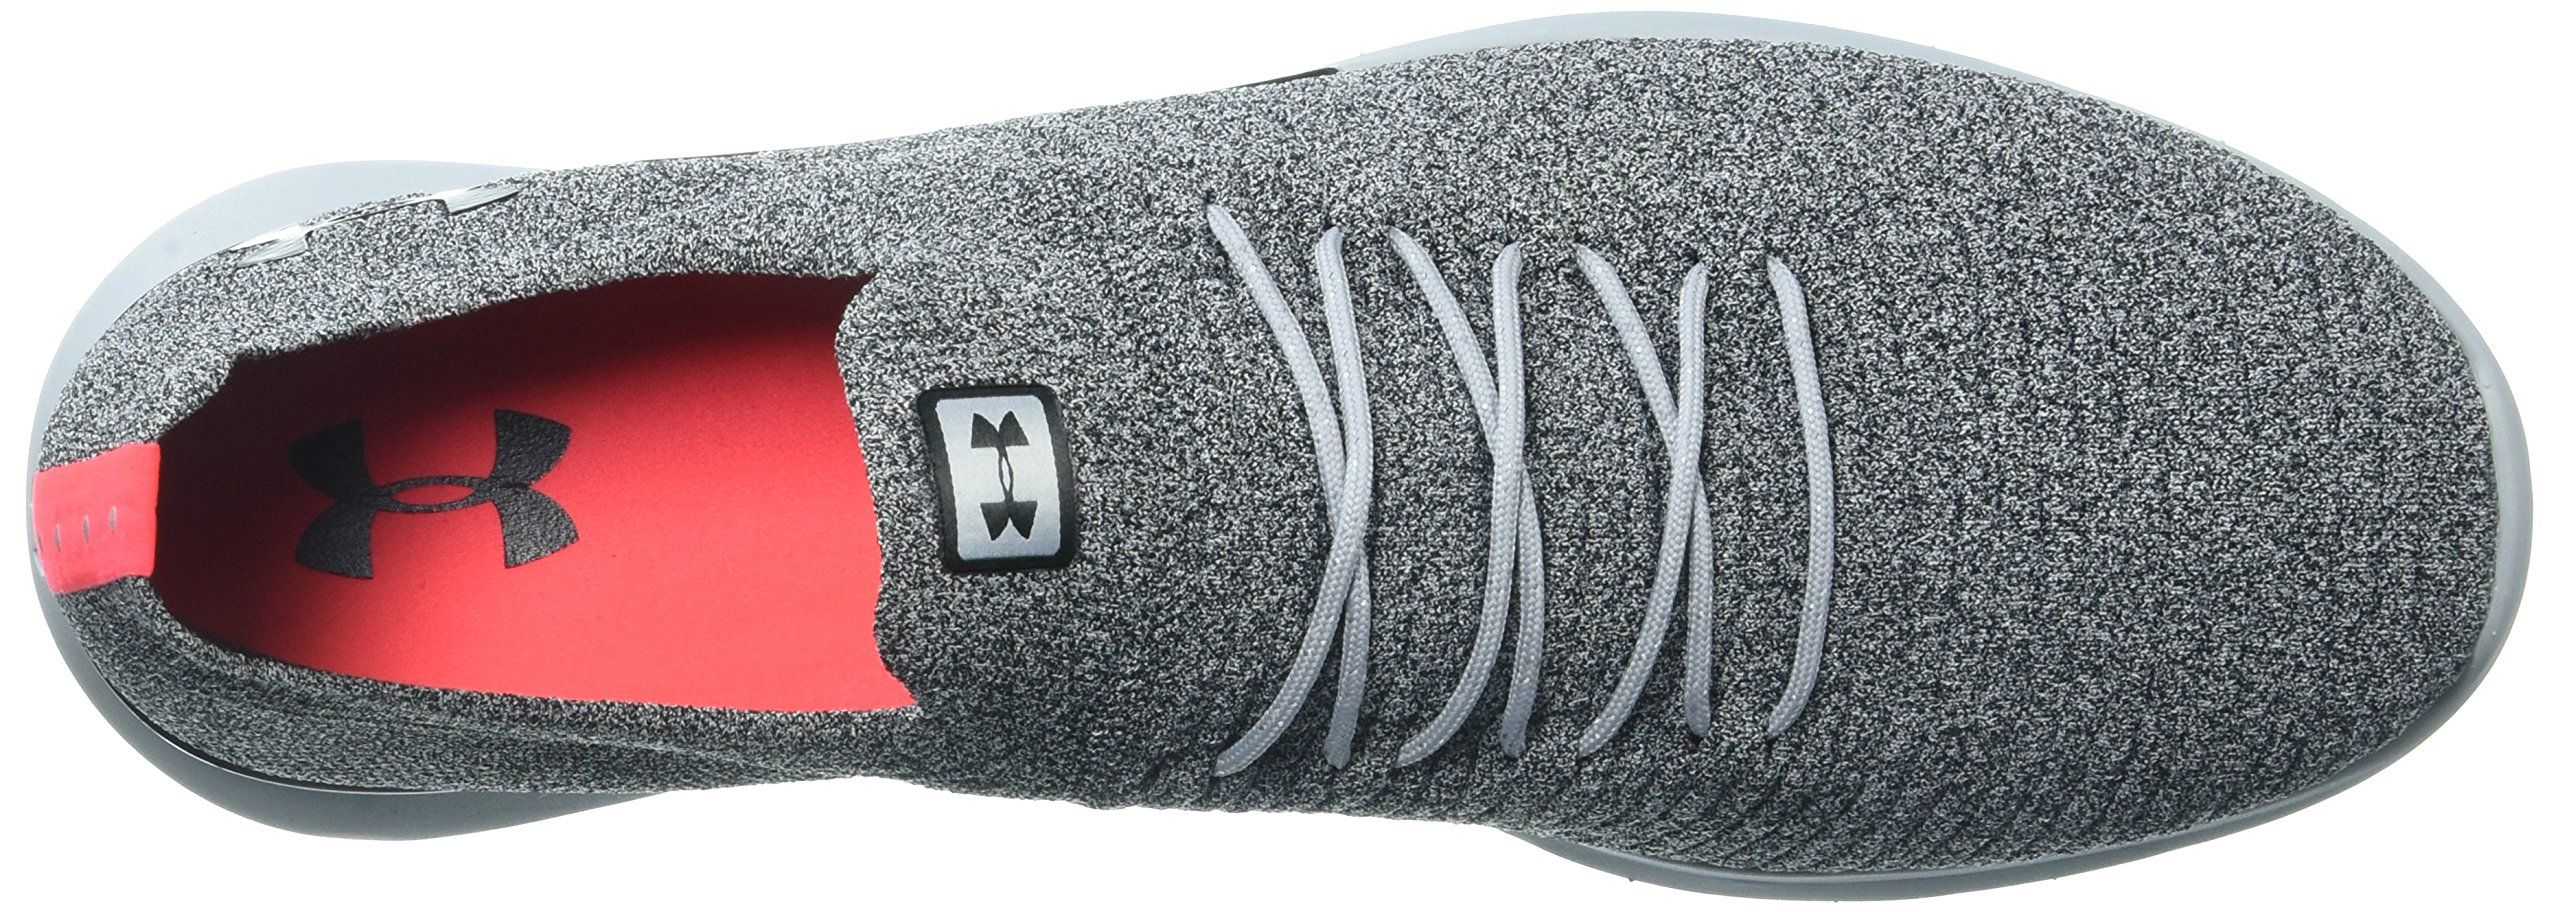 Atento Perfecto Tener un picnic  Under Armour Mens Slingwrap Phase Overcast Gray/Overcast Gray/Black 14 DM  US *** Details can be found by c…   Running shoes for men, Under armour men,  Running shoes